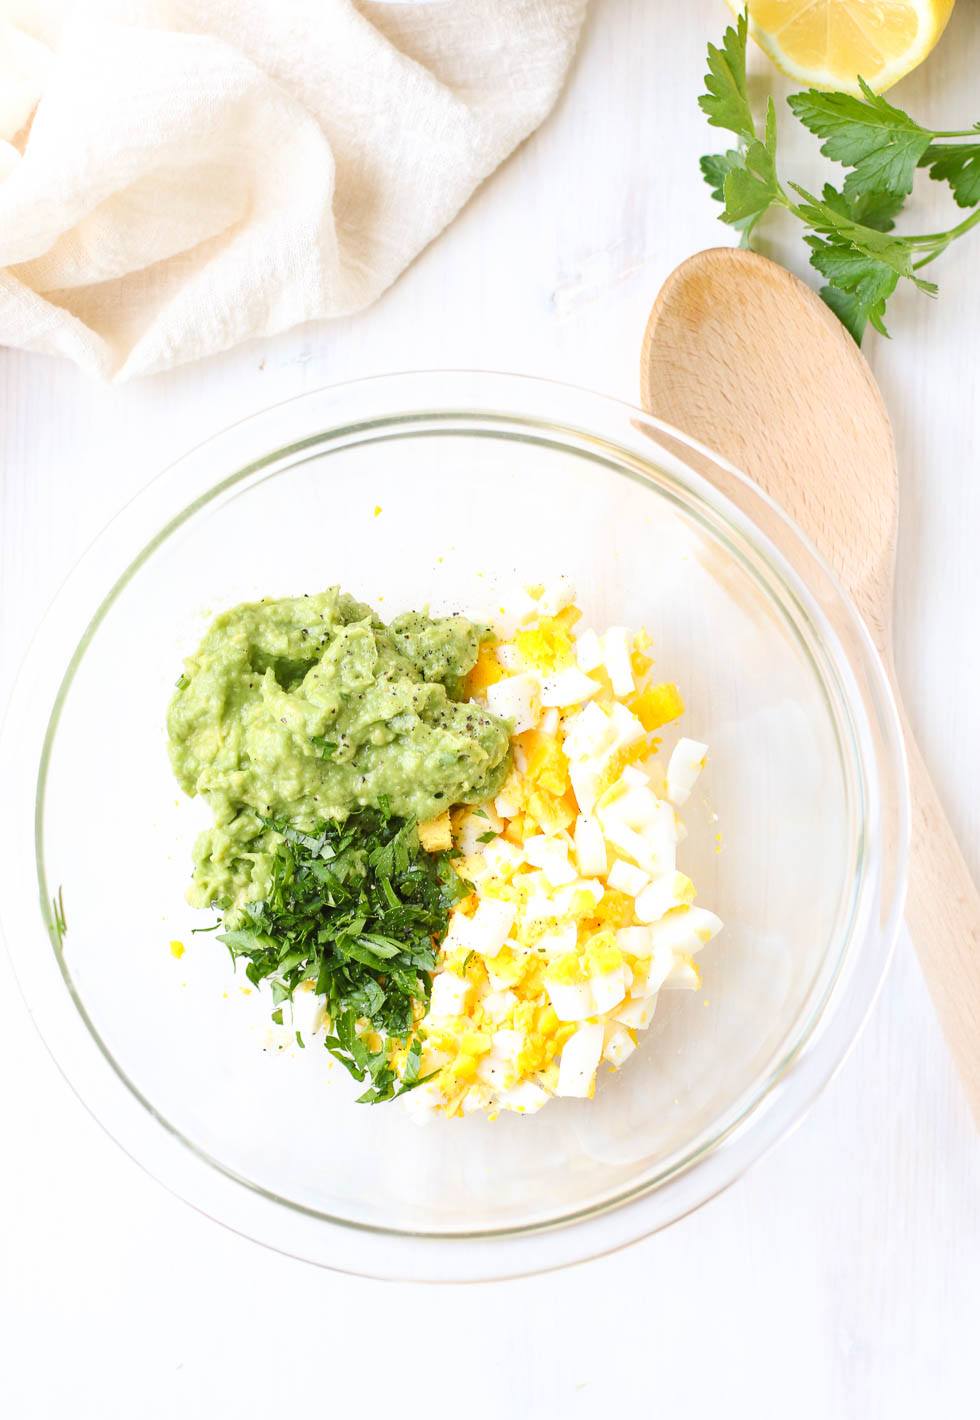 Egg avocado Salad Mixing Ingredients in a bowl